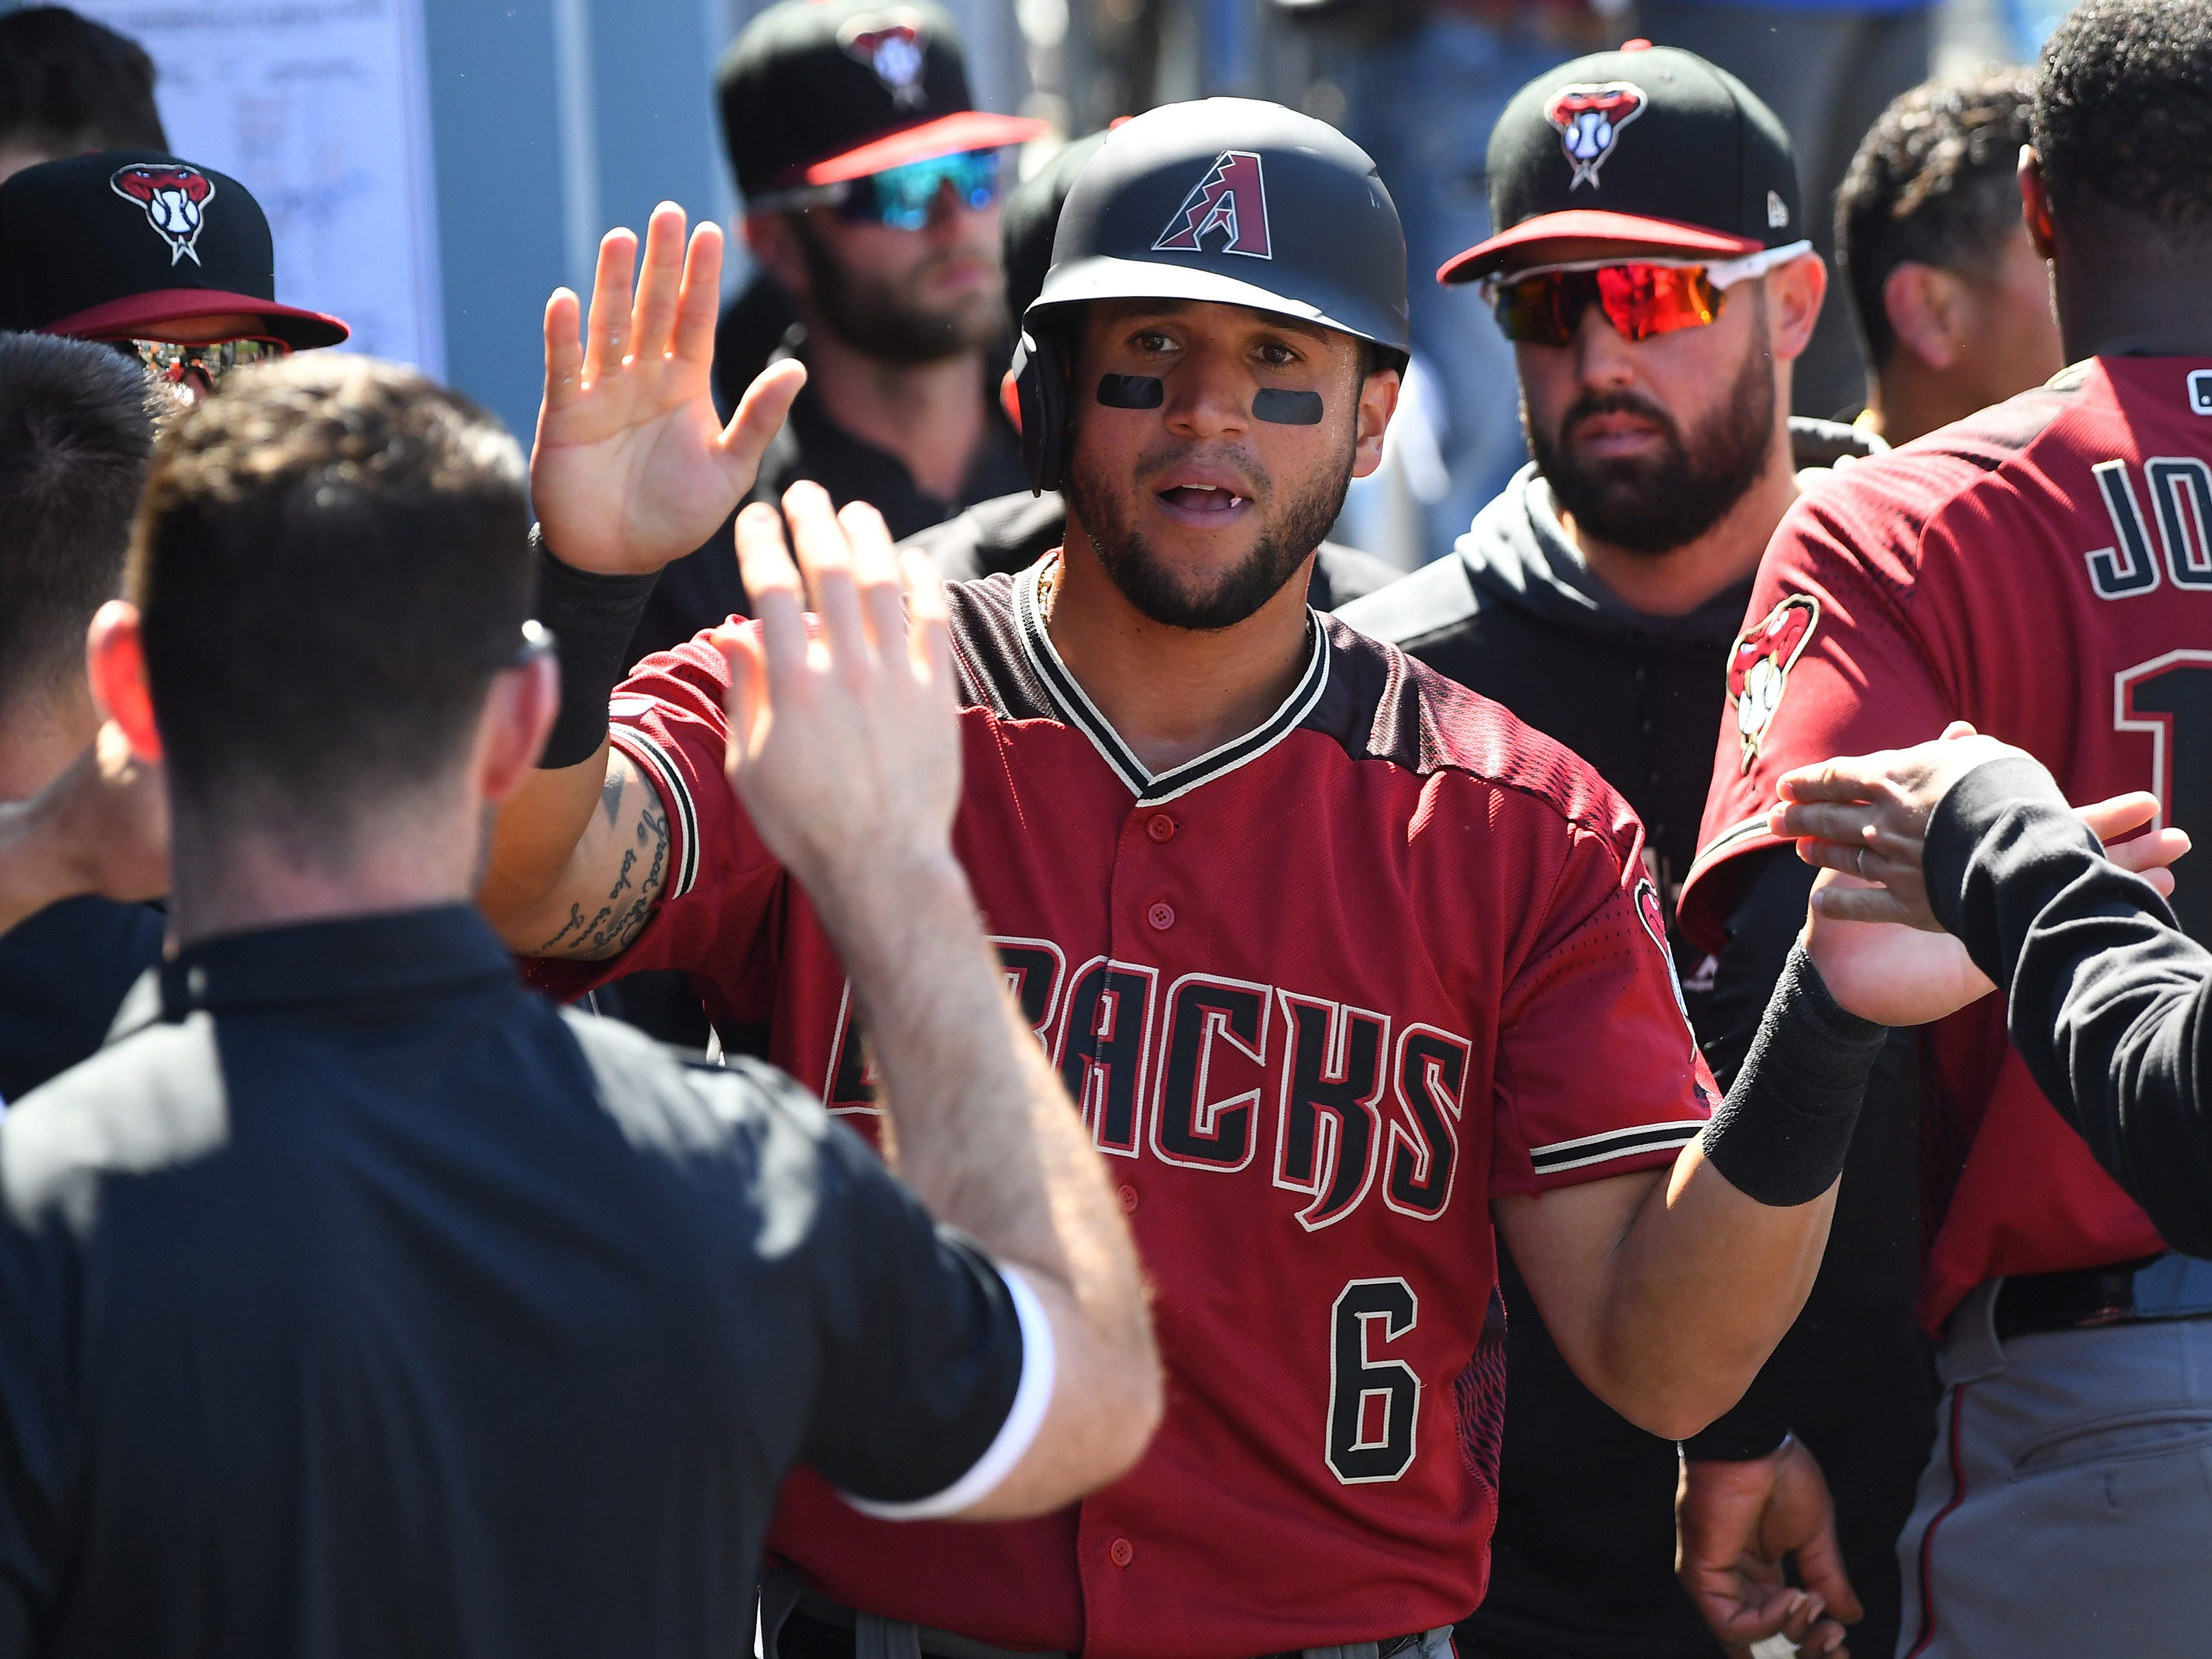 Mar 31, 2019; Los Angeles, CA, USA;    Arizona Diamondbacks right fielder David Peralta (6) is greeted in the dugout after scoring a run against the Los Angeles Dodgers in the fourth inning at Dodger Stadium.